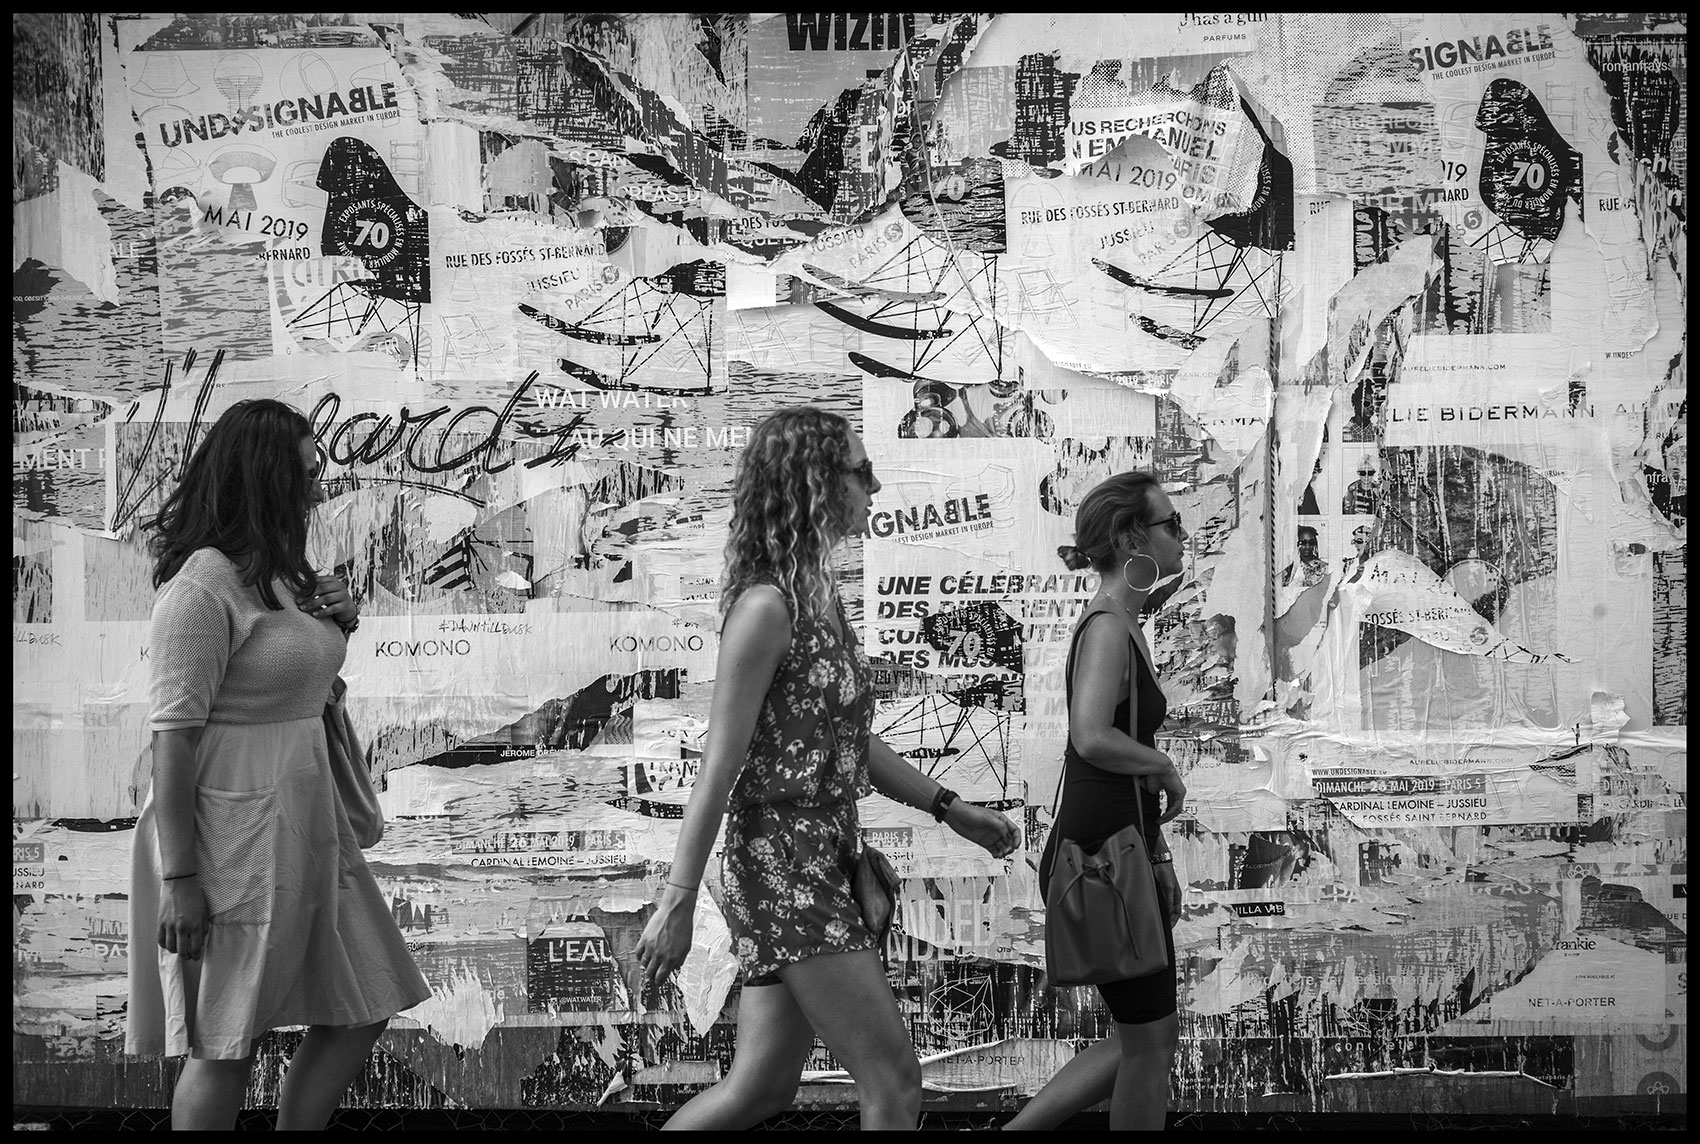 Paper wall - Street Photography | Stefano Paradiso - Photographer